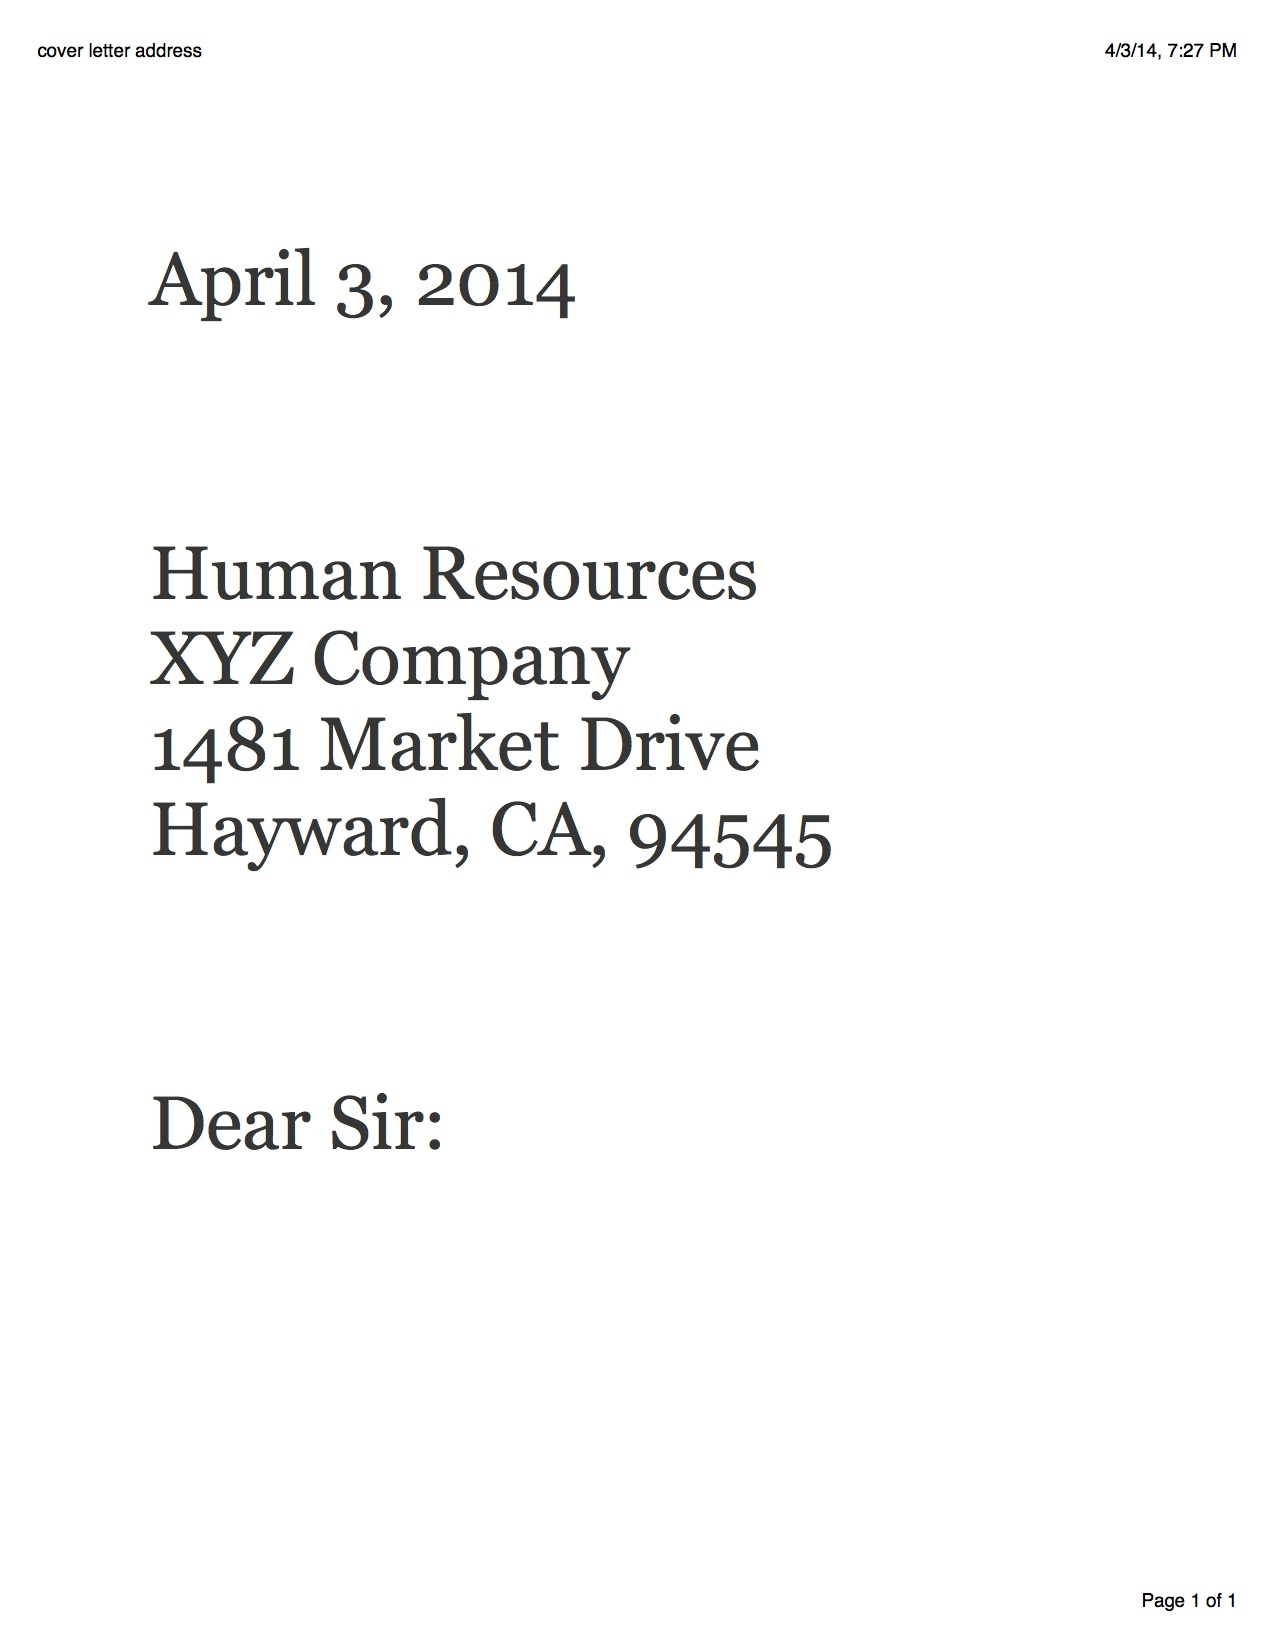 Bad Cover Letter  Cover Letter Name